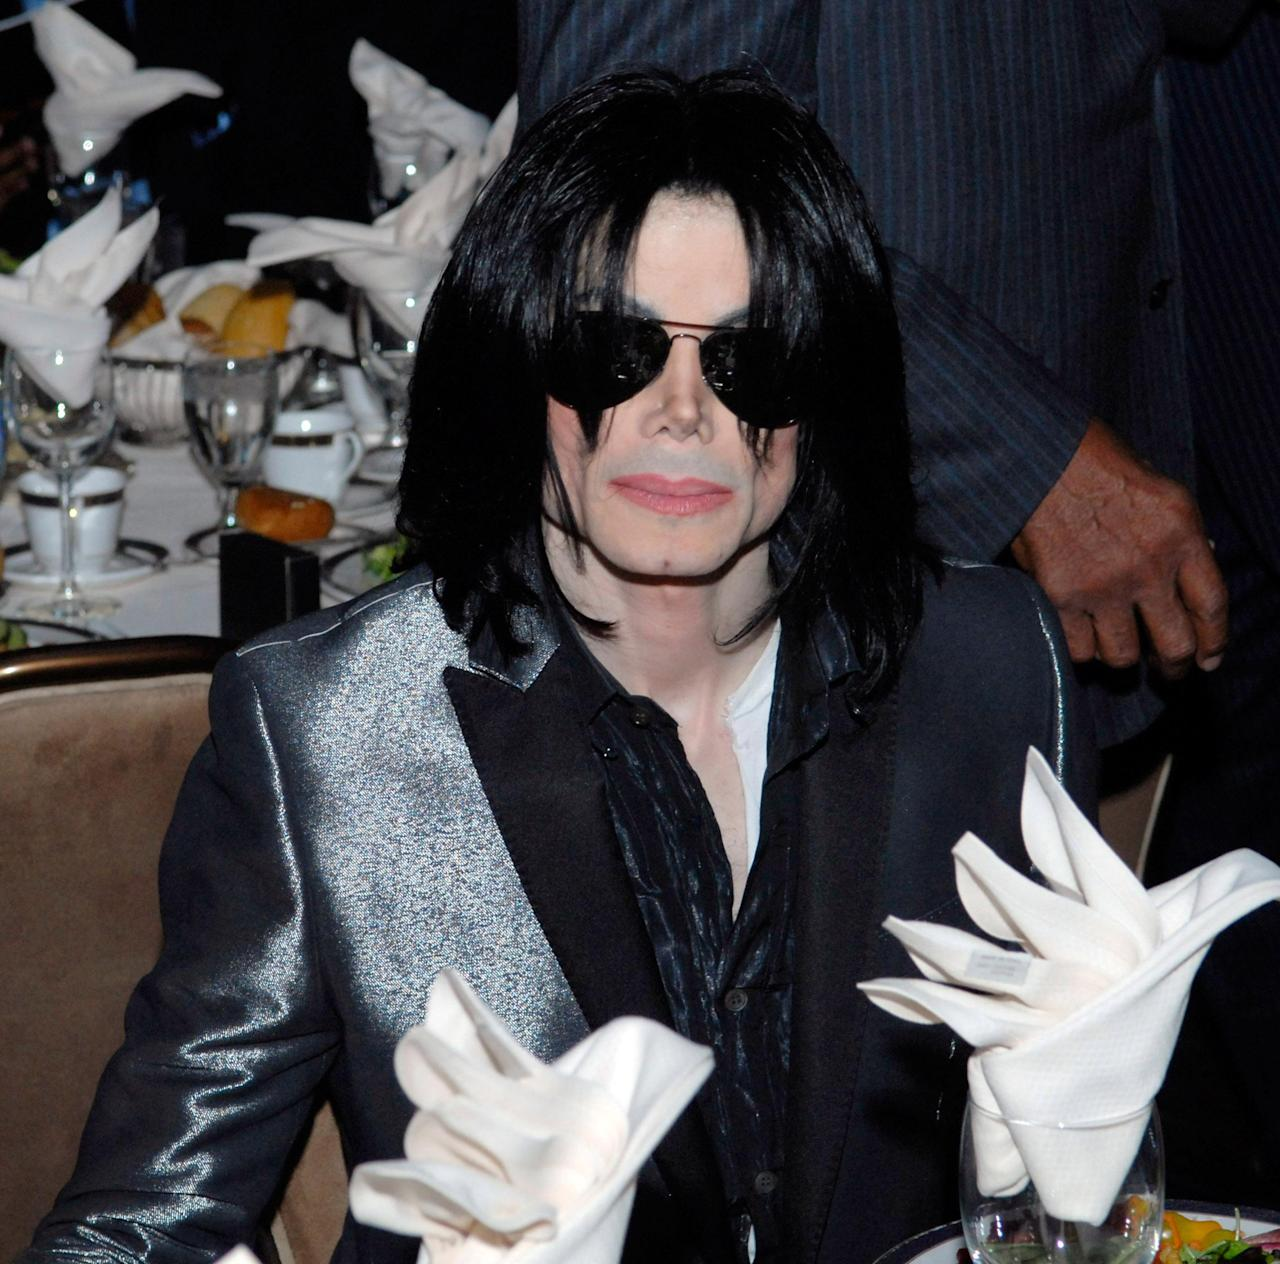 Michael Jackson allegedly cried when Marlon Brando confronted him about child sexual abuse allegations